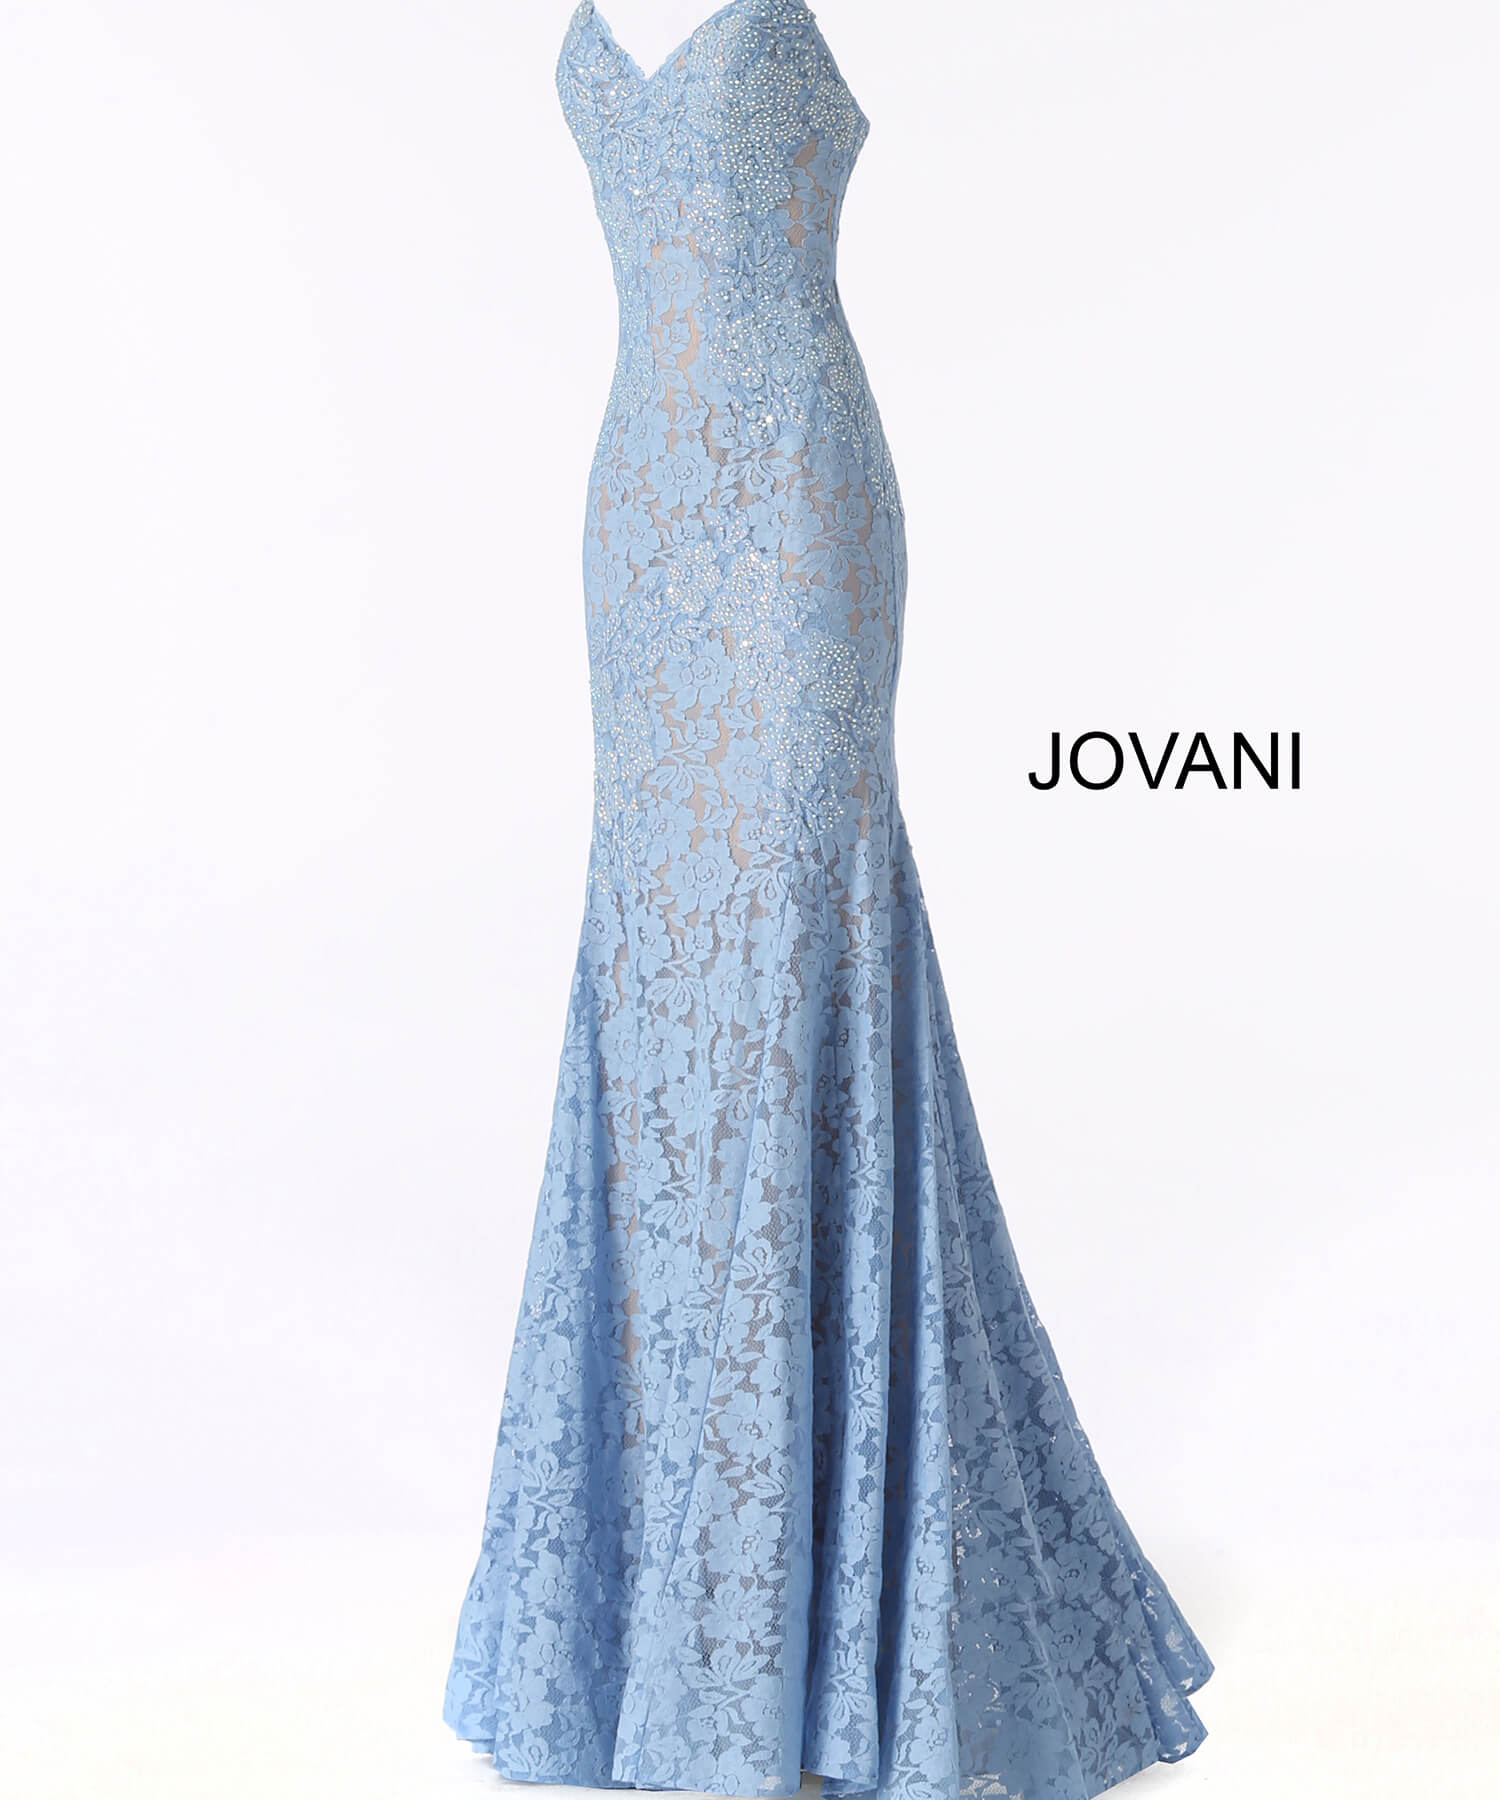 Jovani 37334 Emerald Strapless Fitted Lace Evening Dress